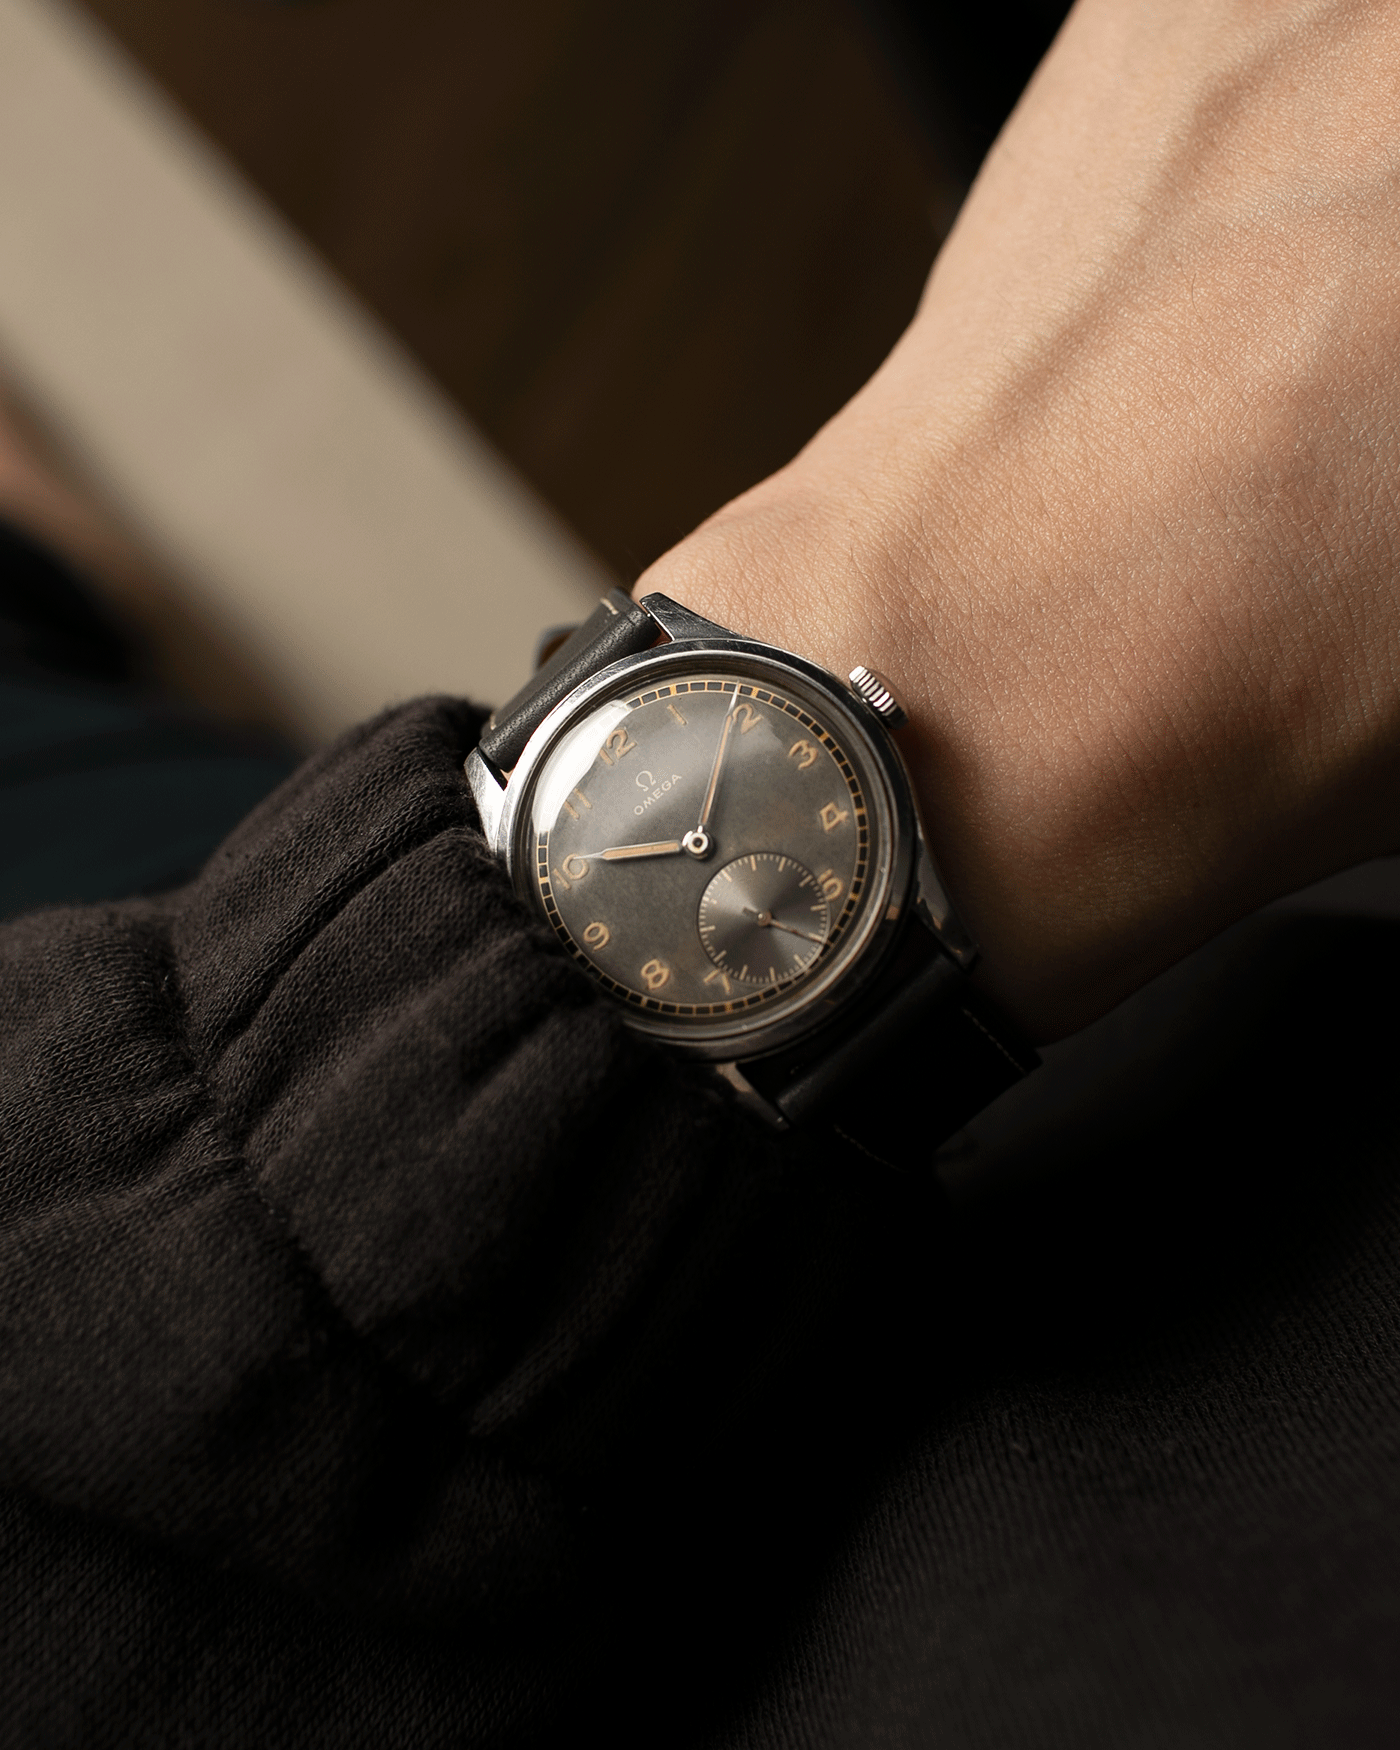 Brand: Omega Year: Approx 1944 Reference Number: 2400-4 Serial Number: 1057XXXX Material: Stainless Steel Movement: Omega 30T2 Case Diameter: 35mm Lug Width: 18mm Bracelet: Nostime Elephant Grey Smooth Calf